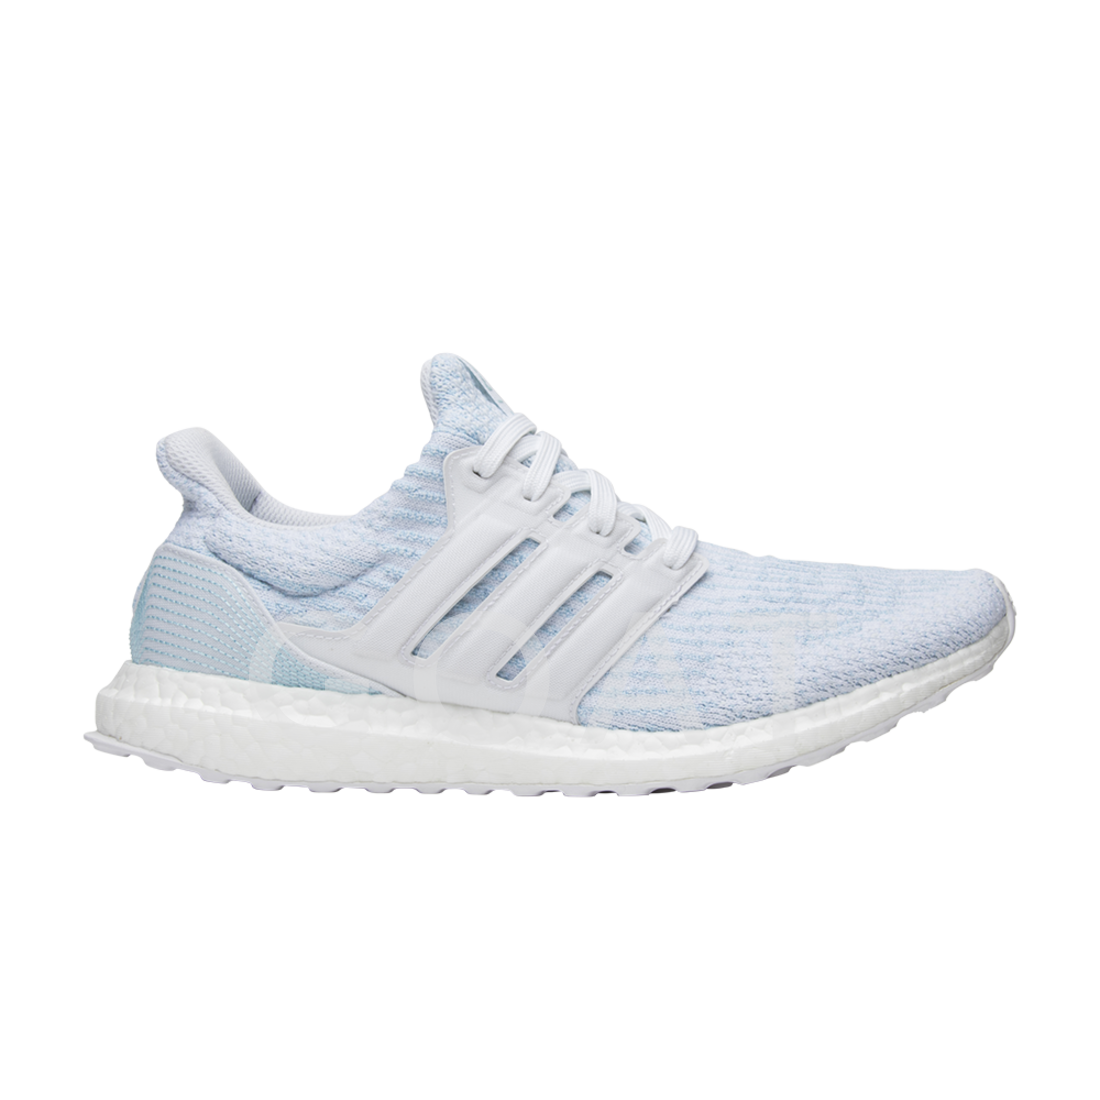 finest selection f9fbd 2b0ee Parley x UltraBoost 3.0 Limited 'Icey Blue' | Kicks | Adidas ...